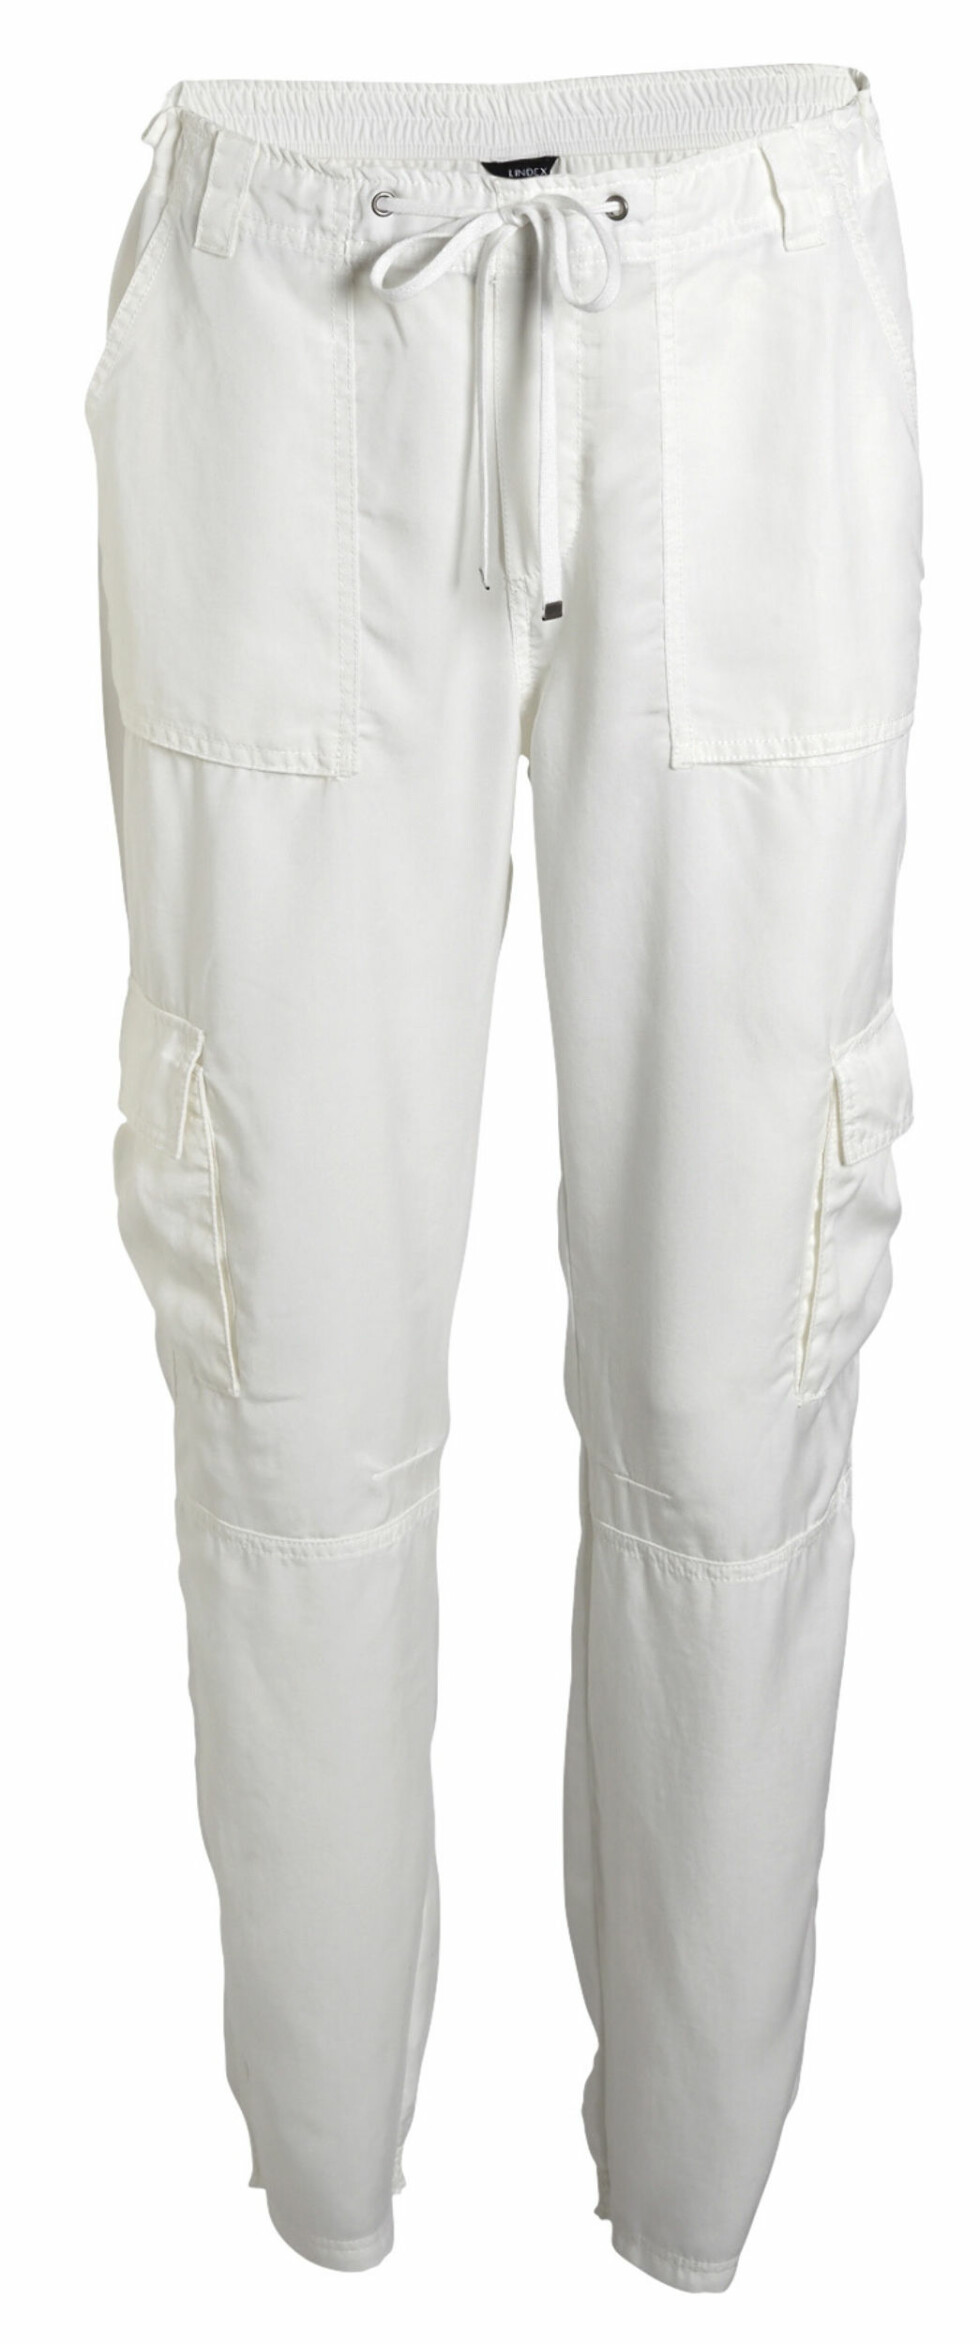 Cargo Trousers  Trousers with loose fit. Elasticized drawstring waist and elasticized at the ankles. Pocket at the front, back and knee. Belt loop waist. Inside leg measures 75 cm in size 38. / Composition: 100% LYOCELL / Sizes: 34 - 44  Prices: GB  | SE 299 | NO 299 | FI 34.95 | EE 34.95 | LV 34.95 | LT 129 | CZ 899 | SK 34.95 | PL 129 | RU 1799 | BA 59.95 | IS 5995 | HR 229 | SA  | AE  | CN  | RS 3490  Sales start: 2014-08-11